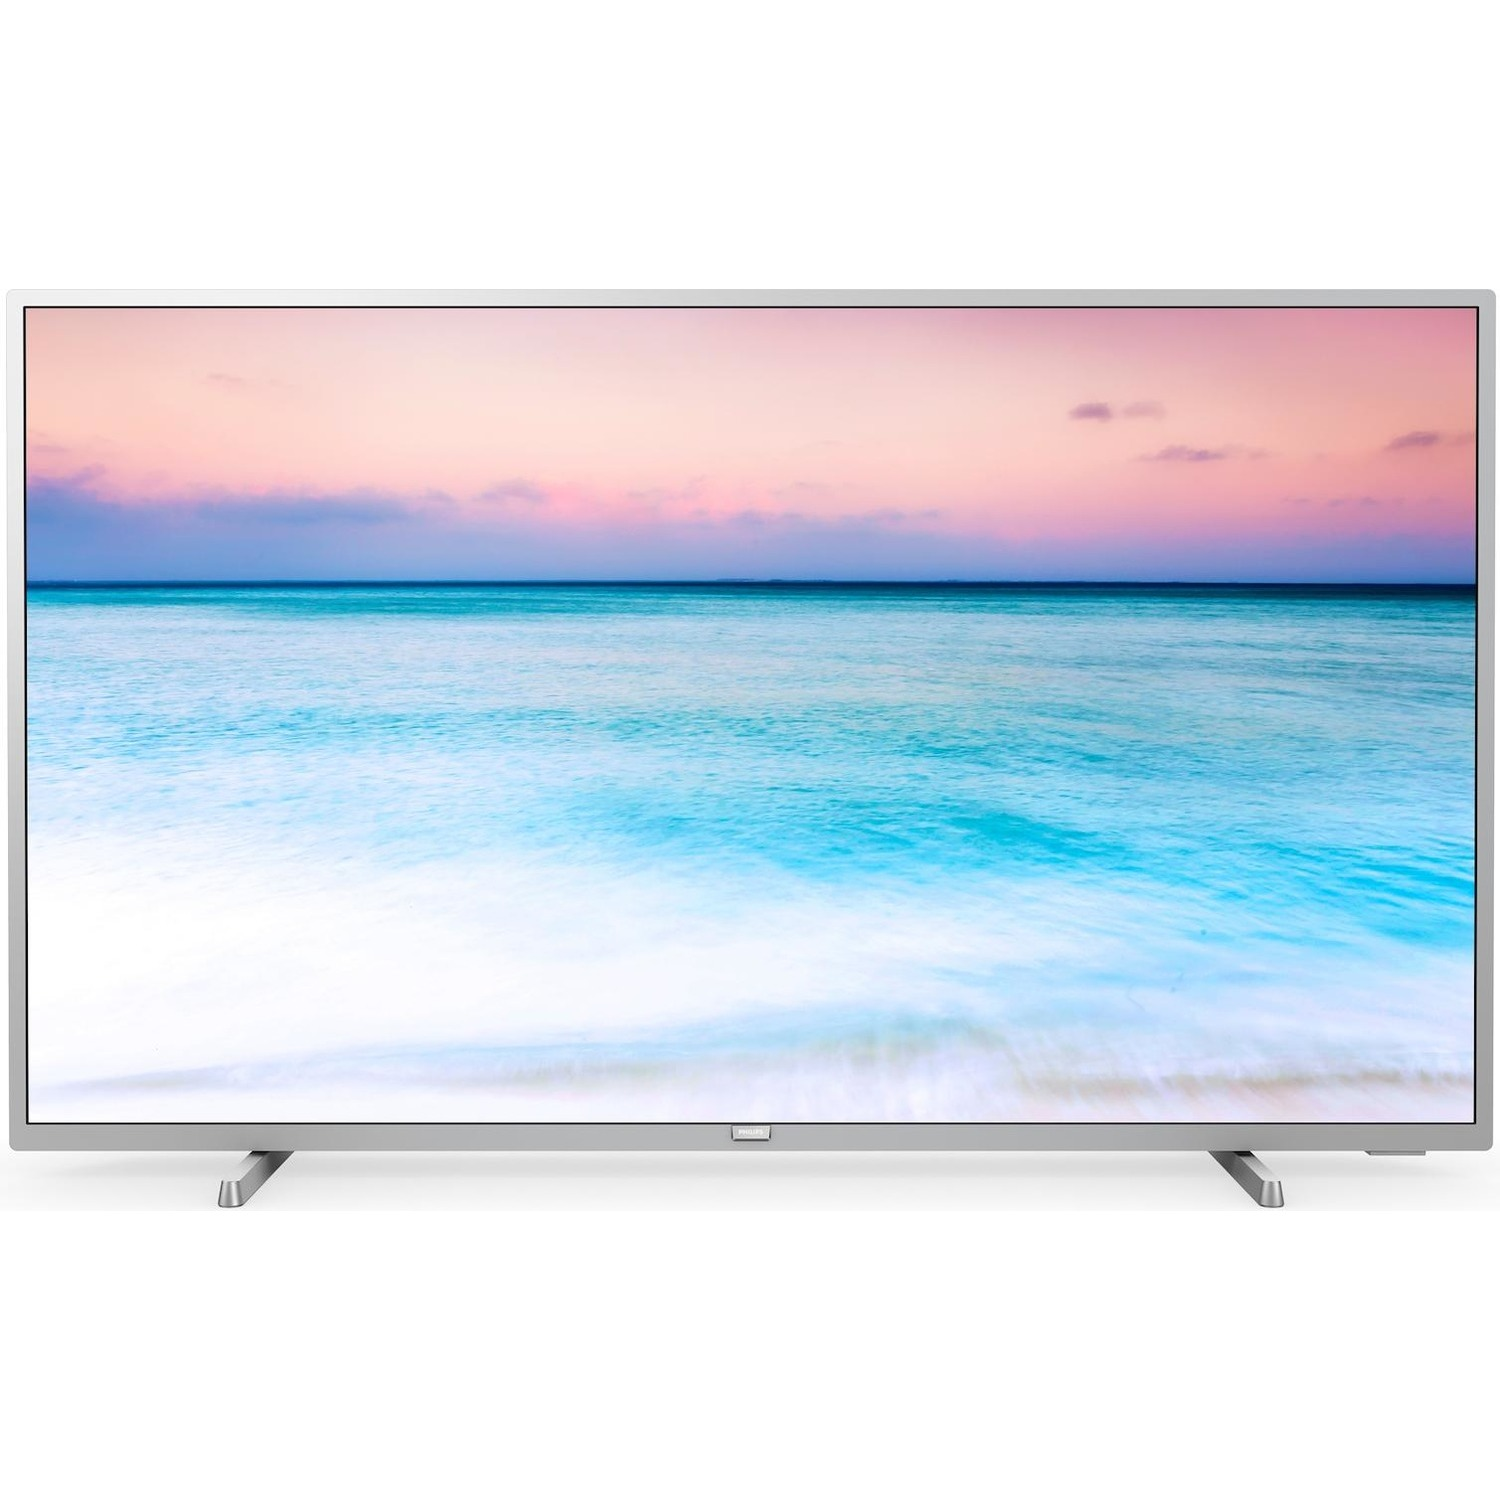 Immagine per TV LED Smart 4K UHD Philips 50PUS6554 da DIMOStore